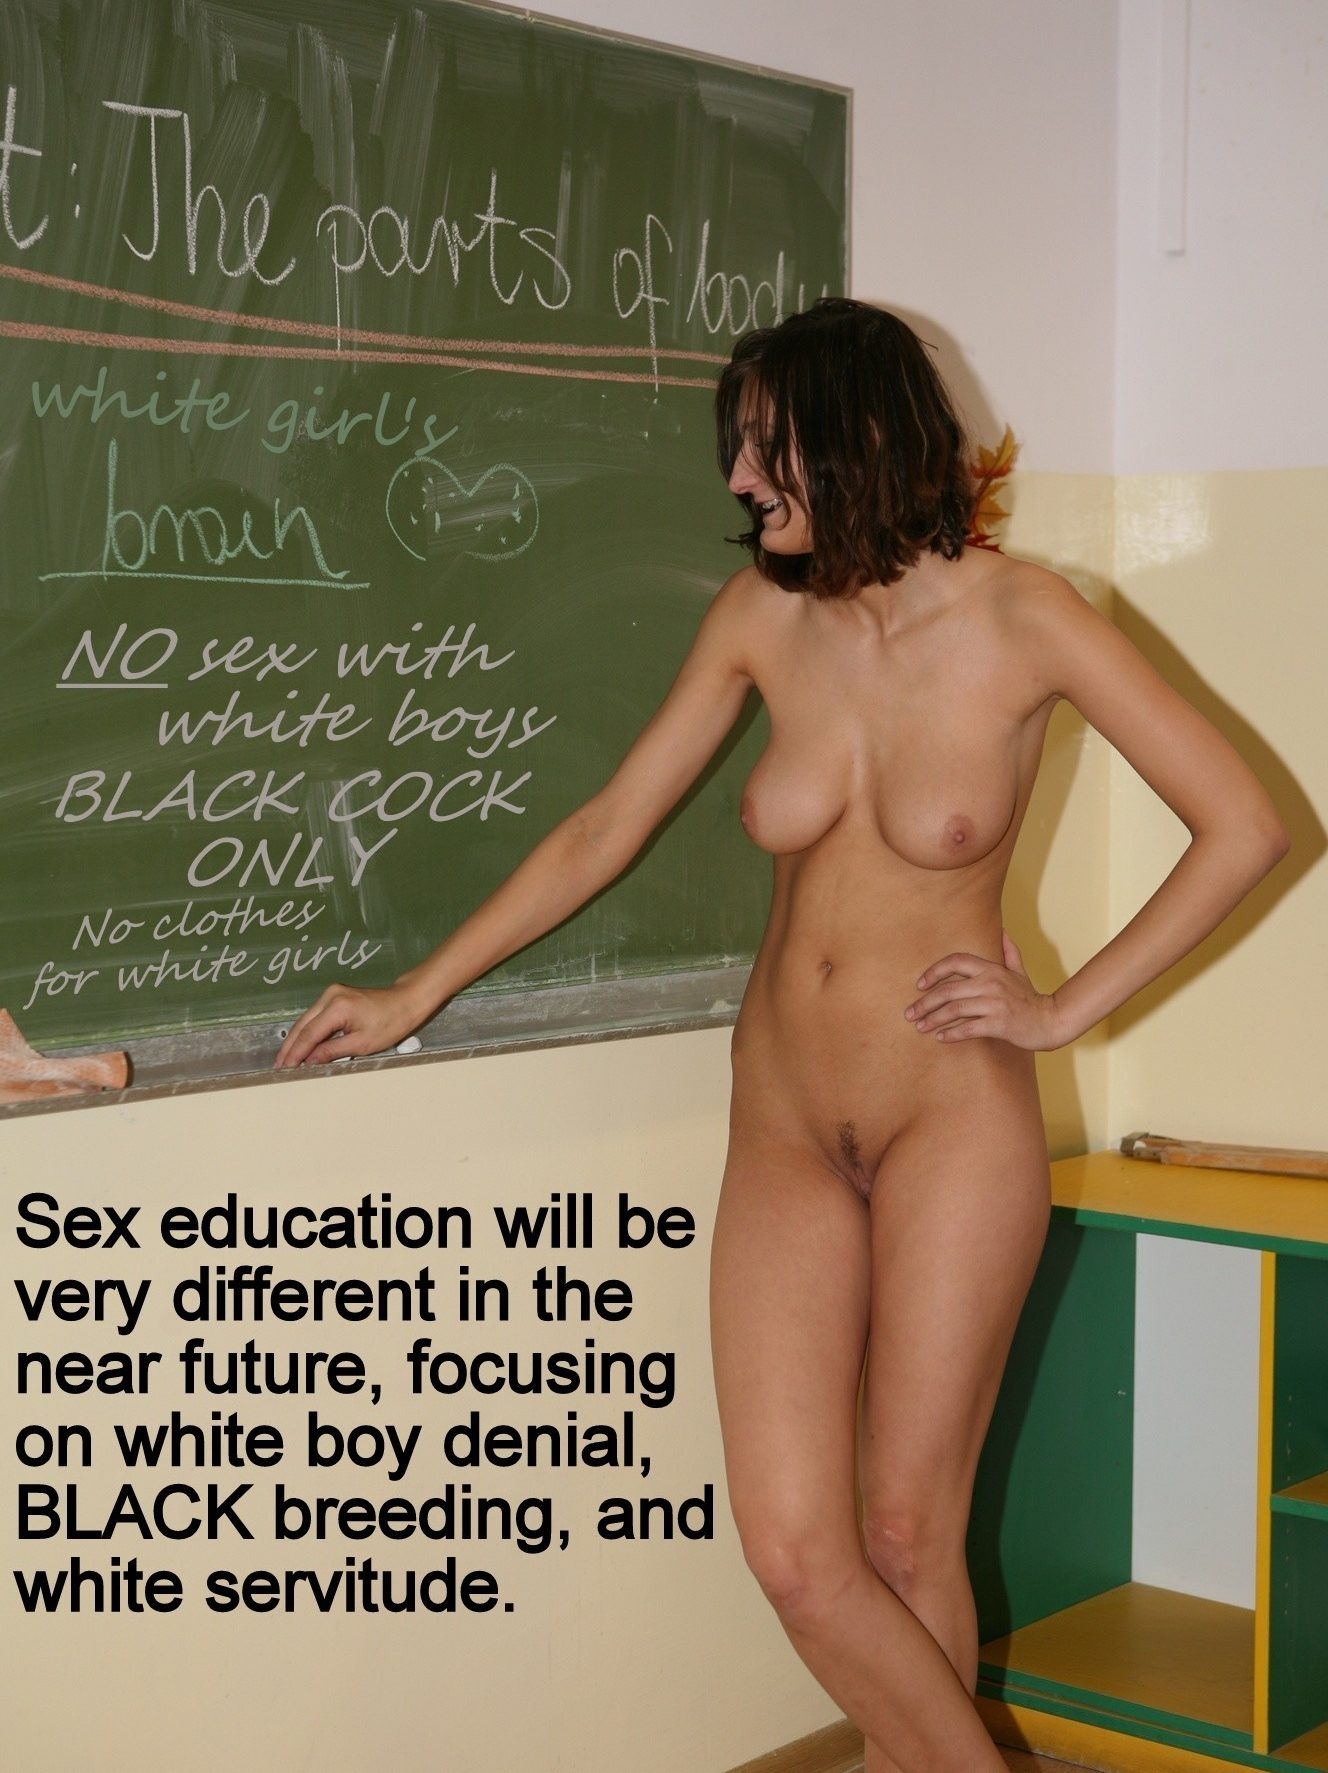 White Education in the New World Order - image white-education-in-the-new-world-order on https://blackcockcult.com